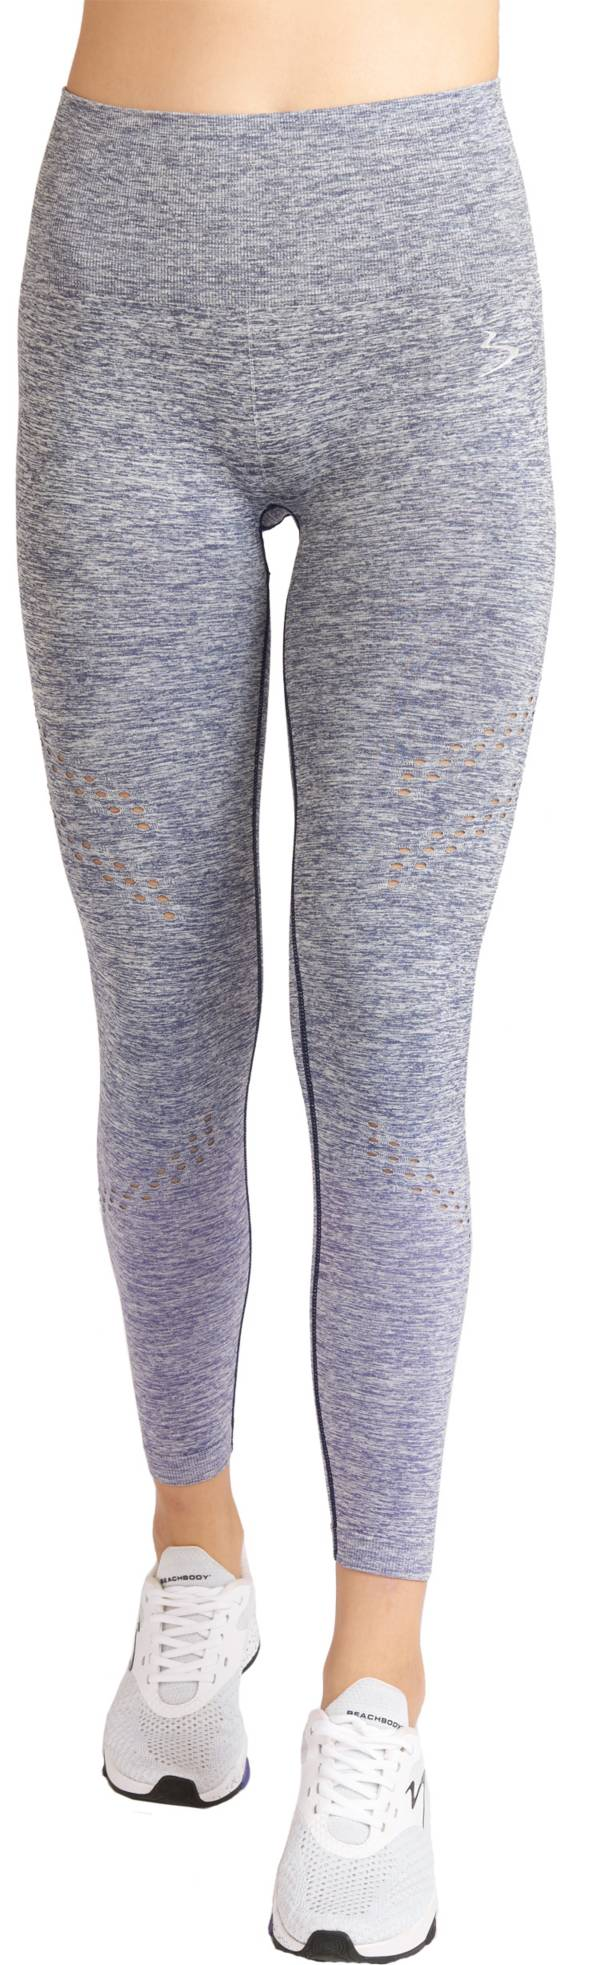 Beachbody Women's Ombre High Rise Tights product image